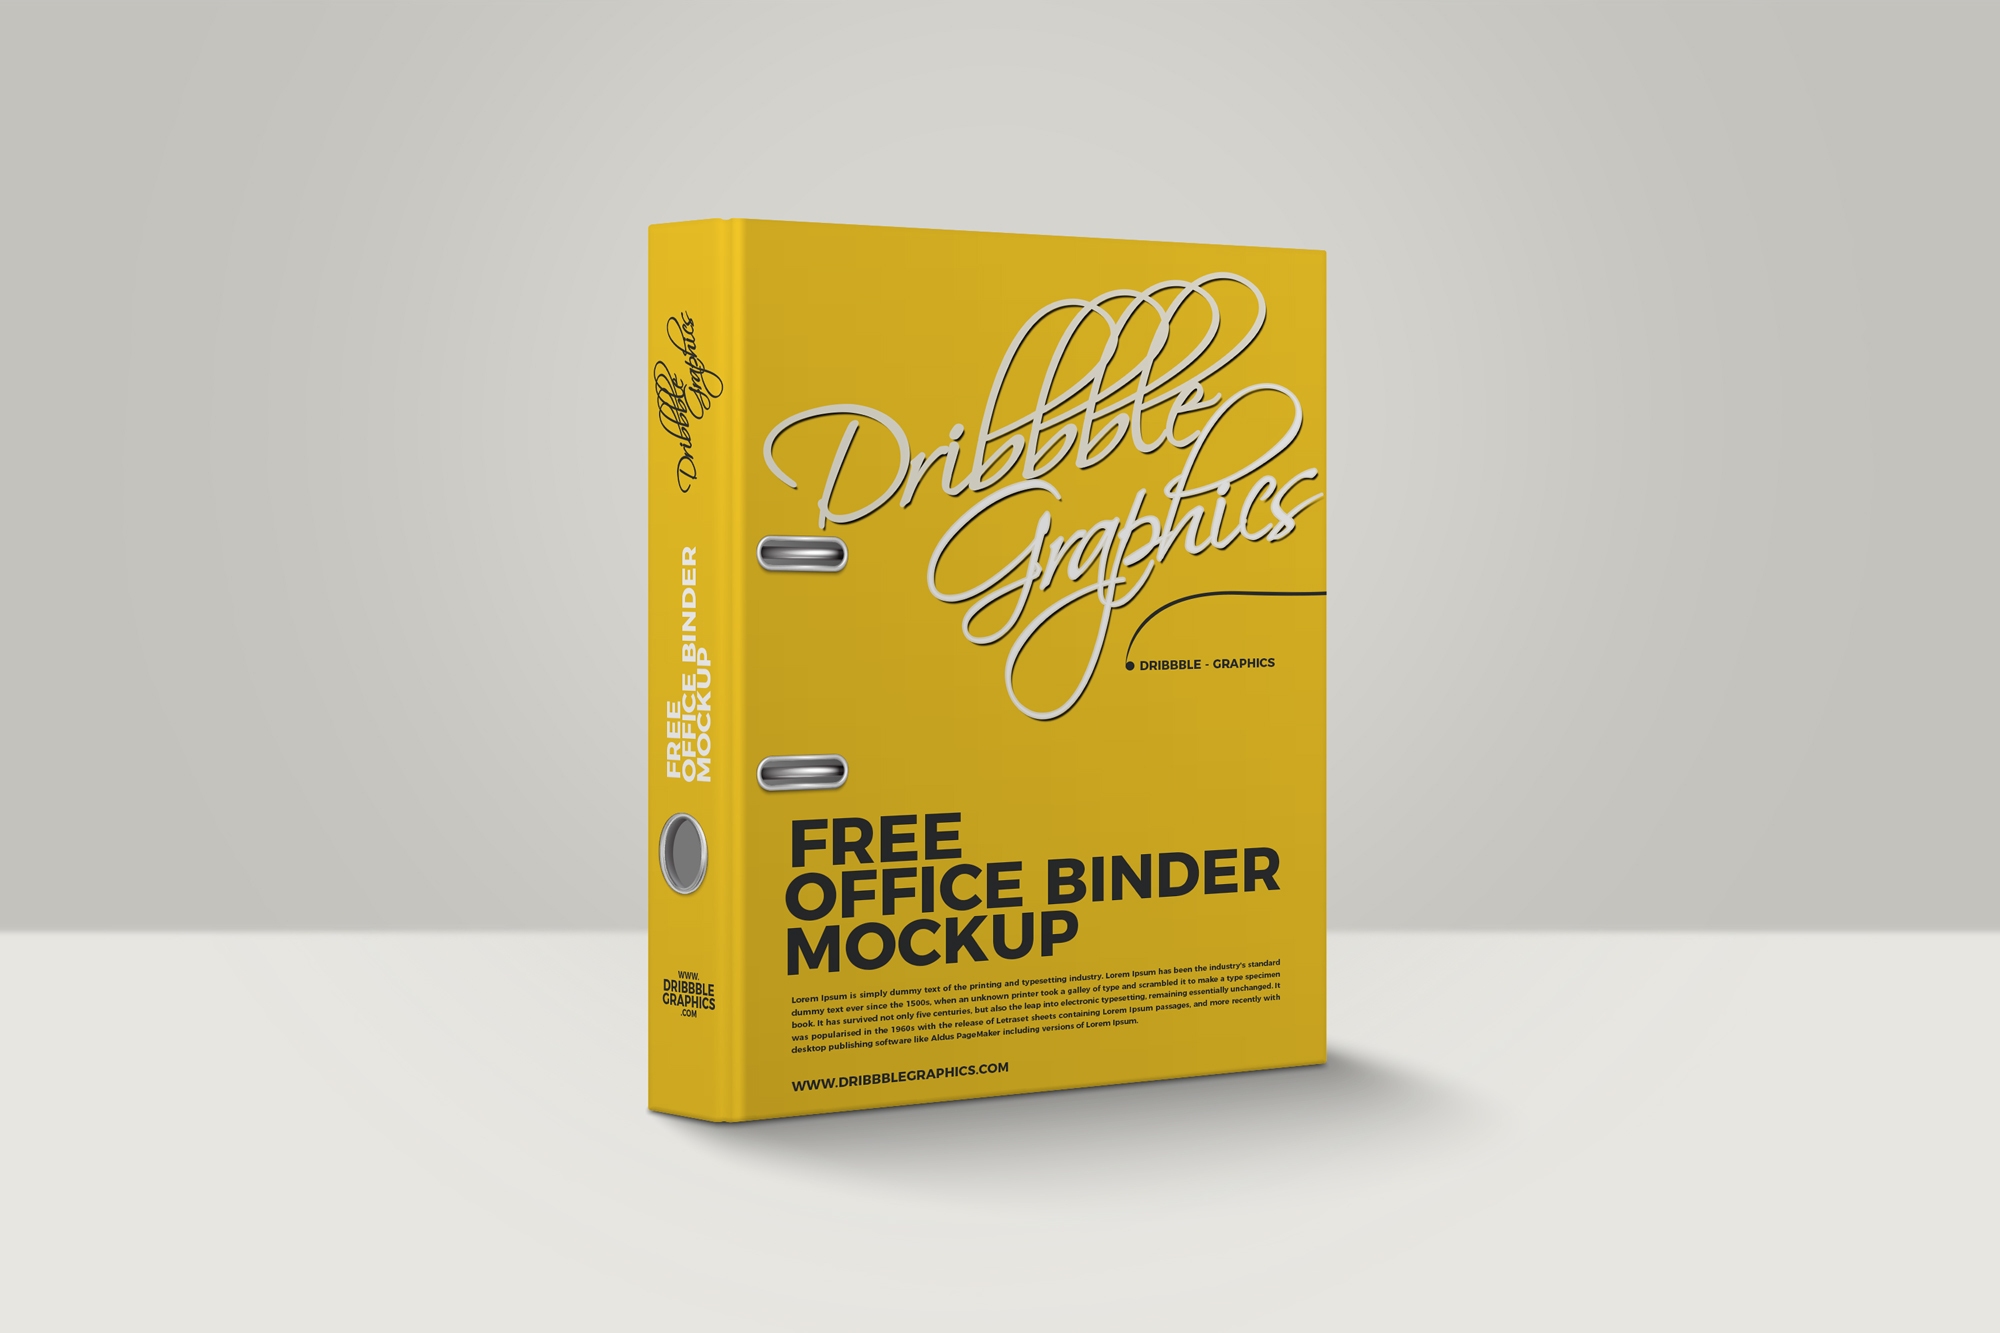 Free-Office-Binder-Mockup